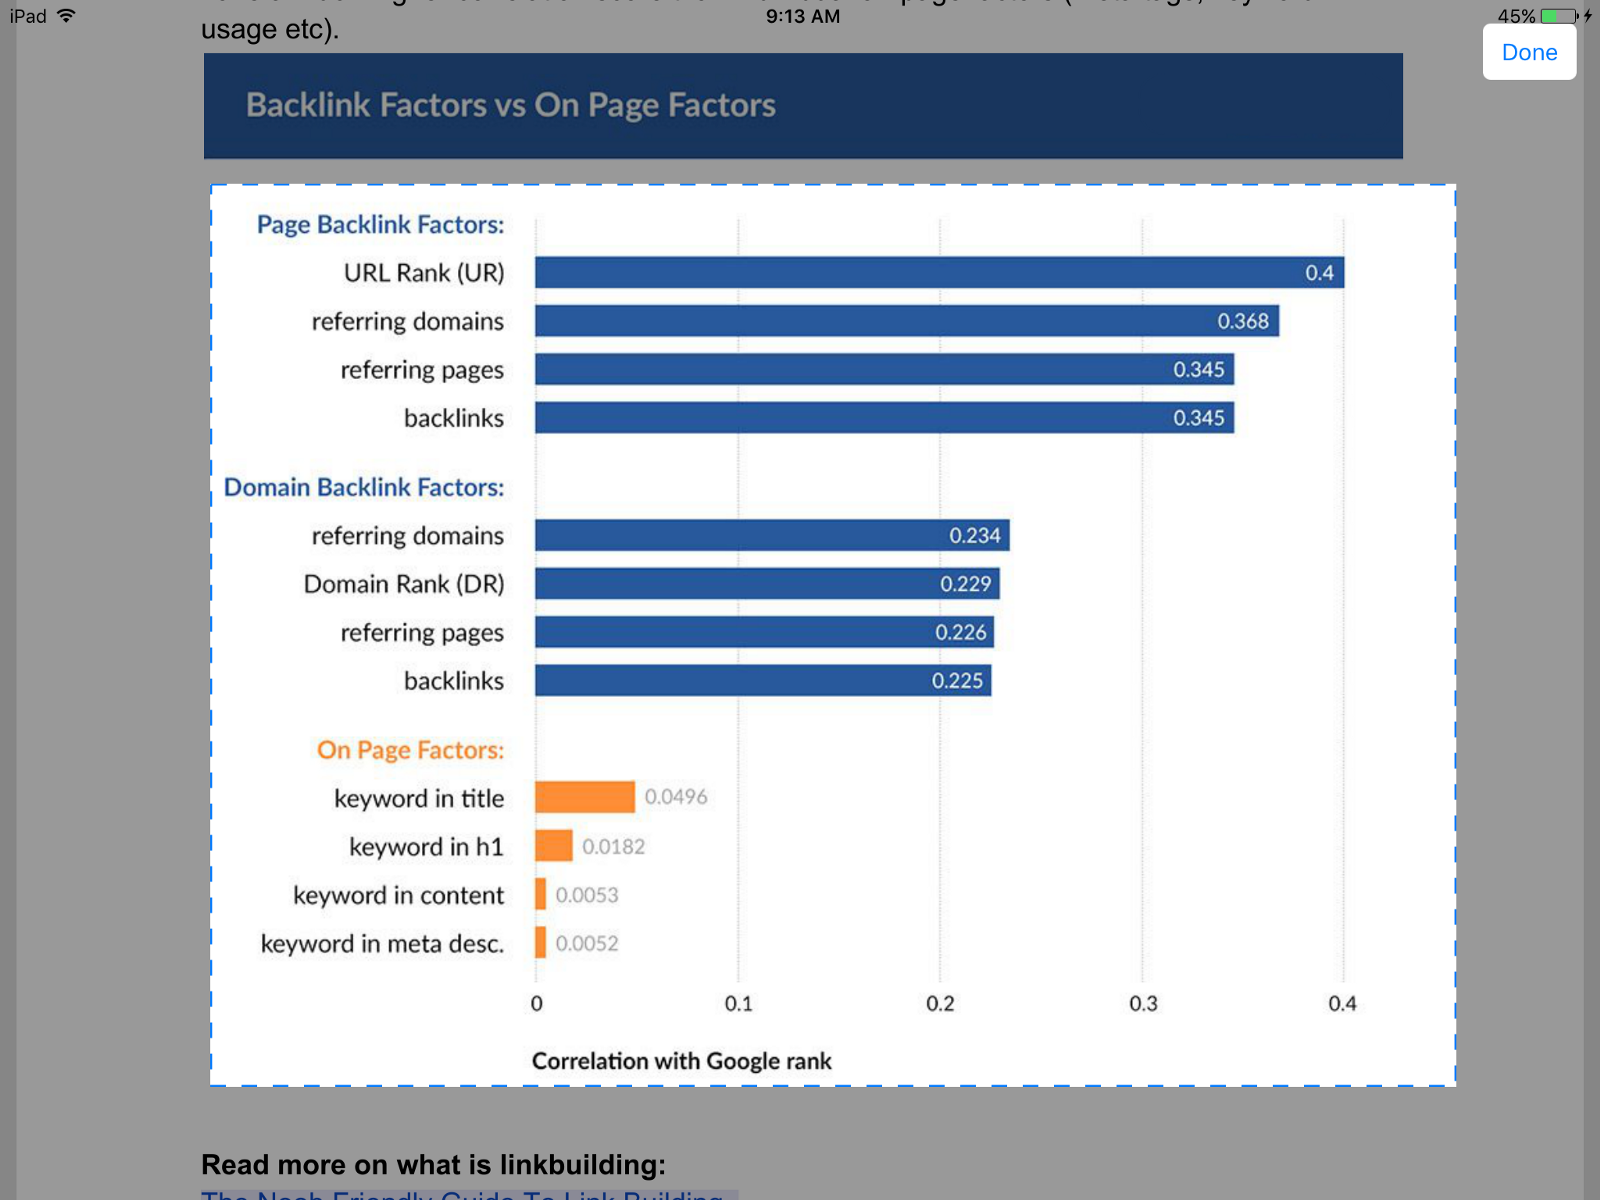 iOS users can easily take a snapshot of the information you need form the PDF documents.